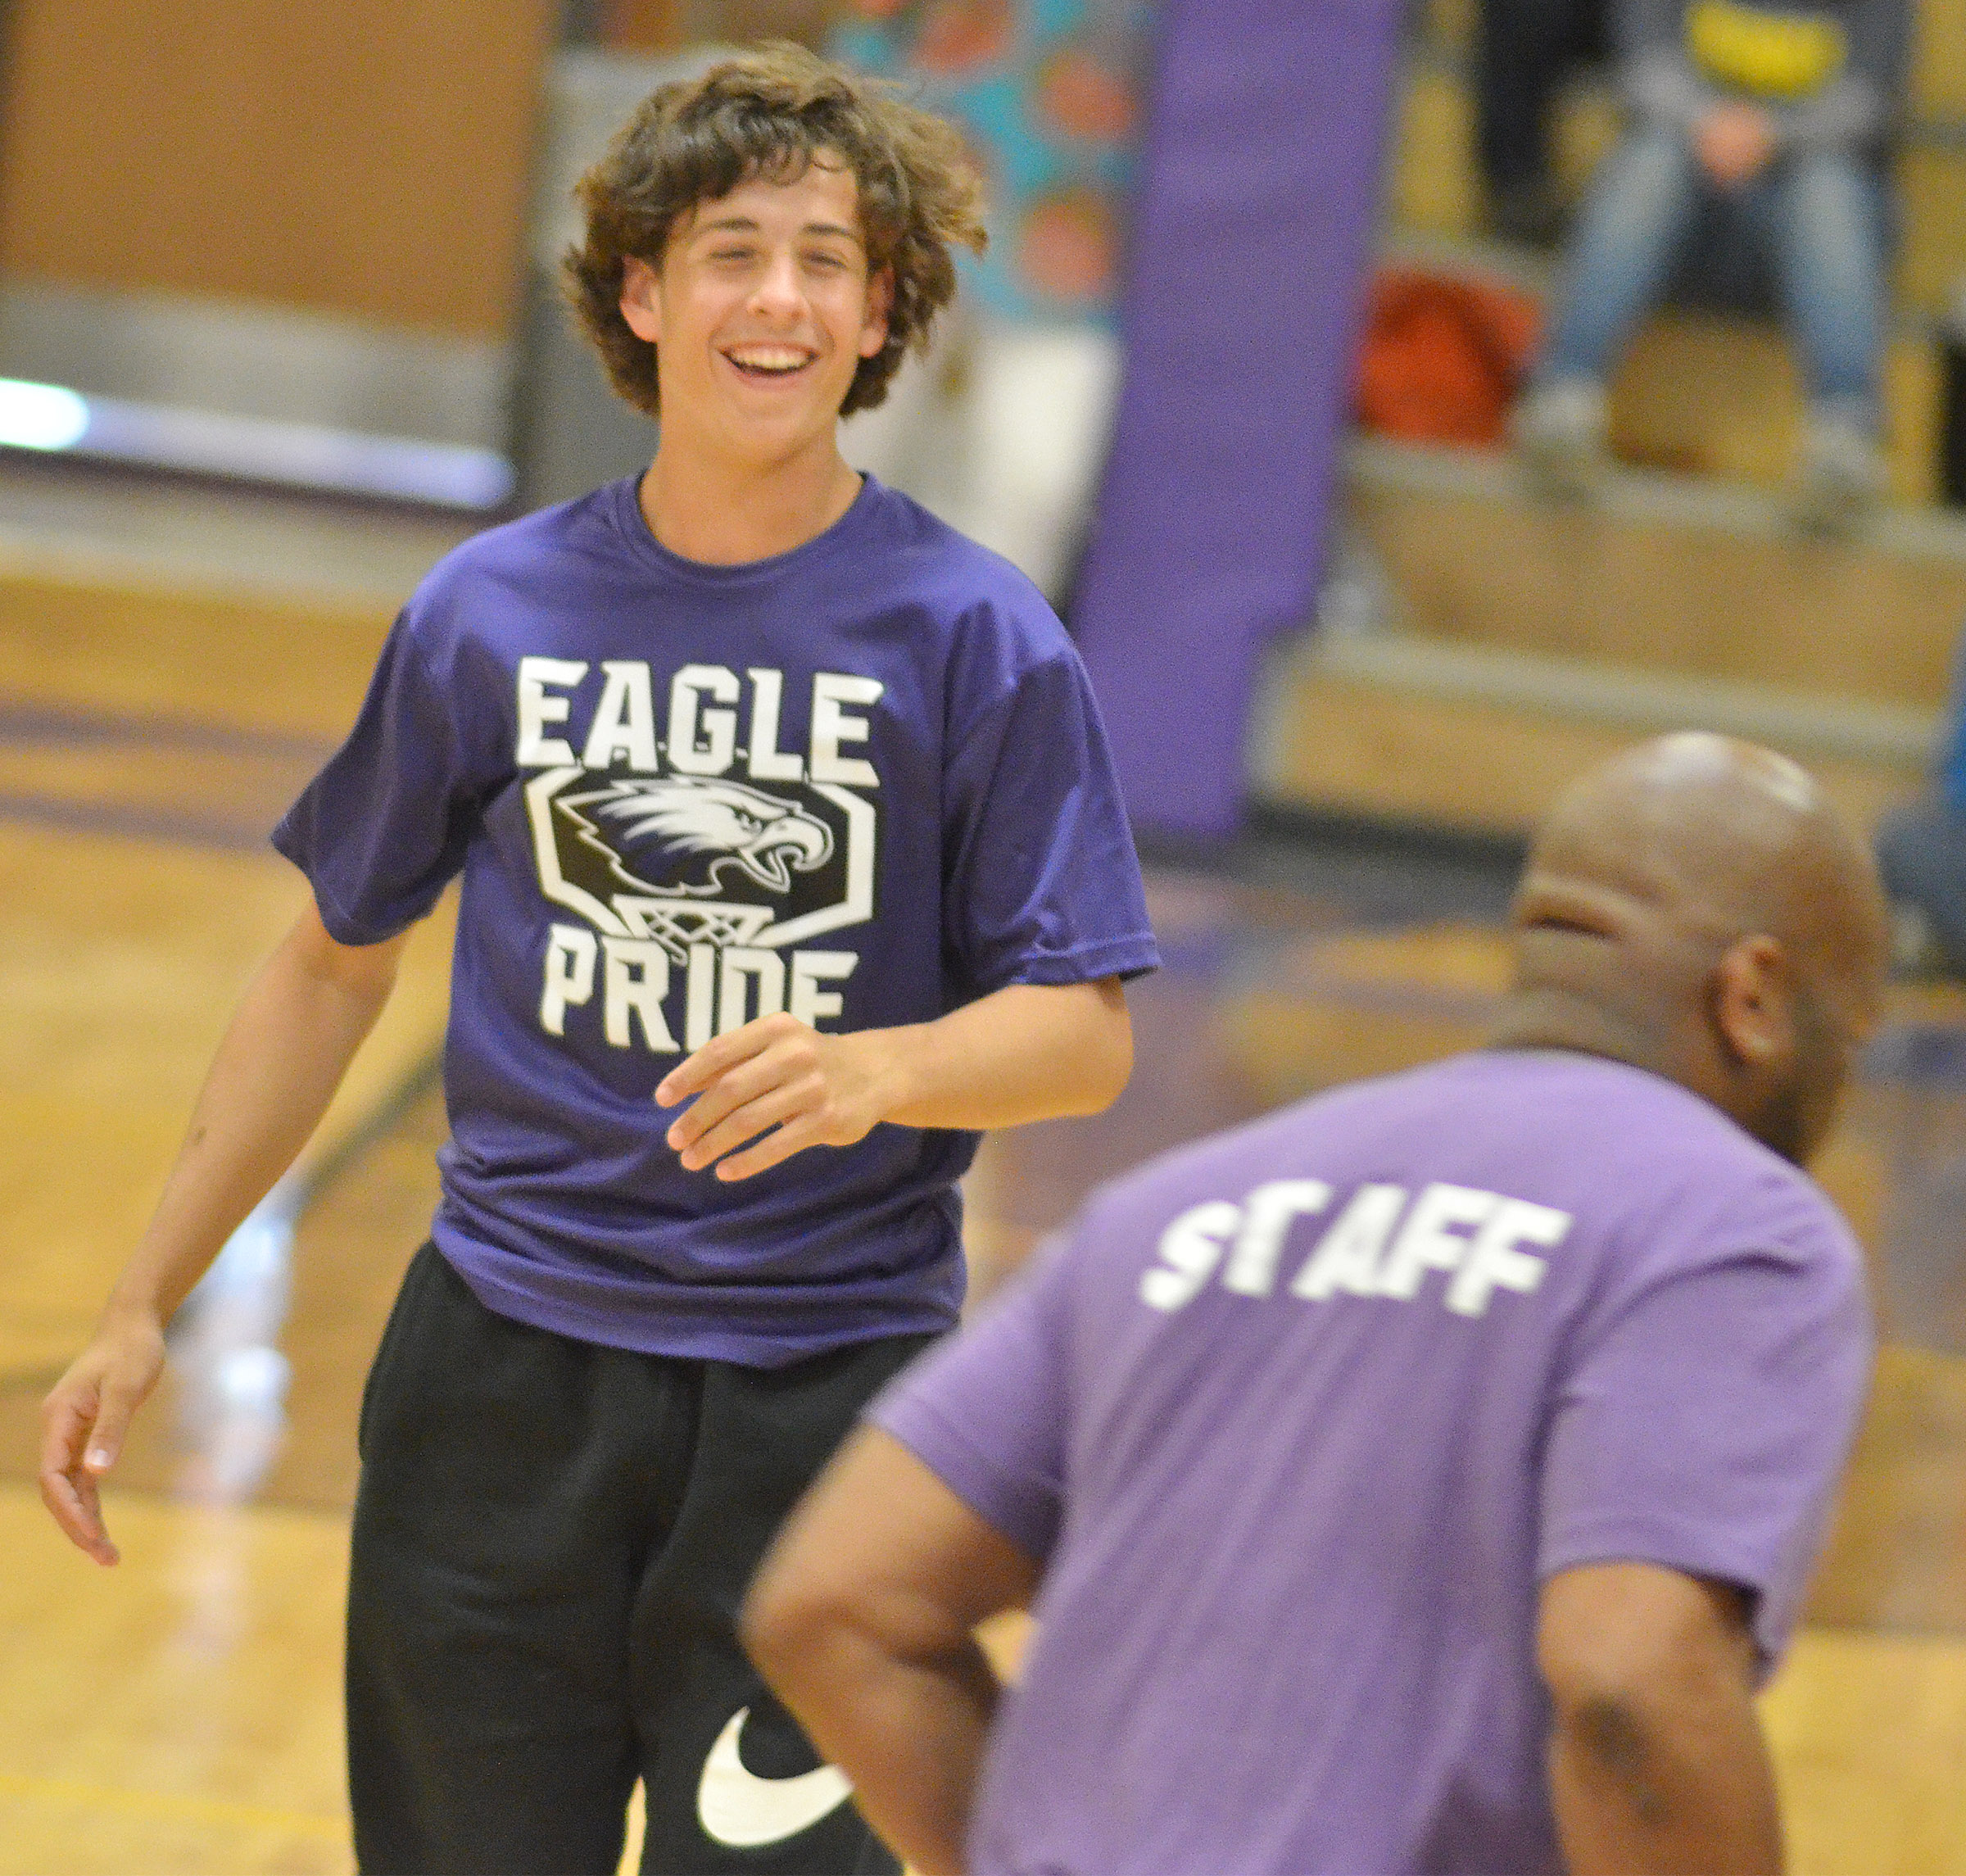 CMS eighth-grader John Orberson laughs as he guards CMS exceptional education teacher Anthony Epps.